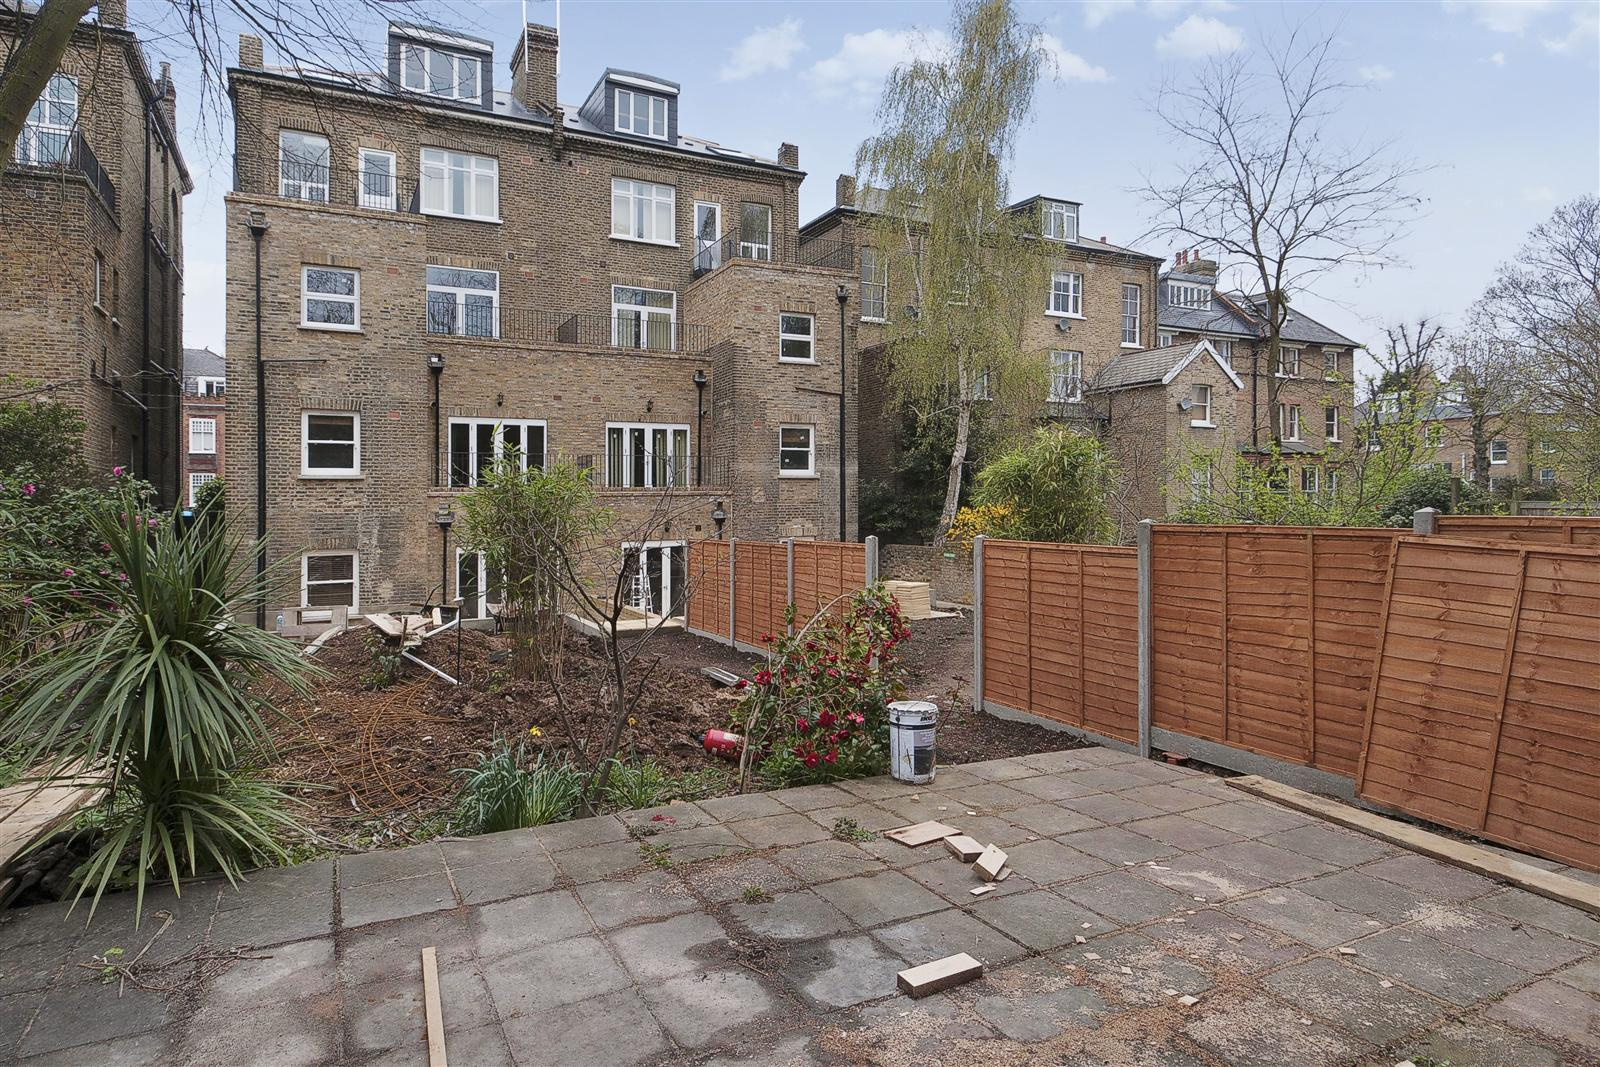 3 bed flat to rent in Anson Road, London, N7